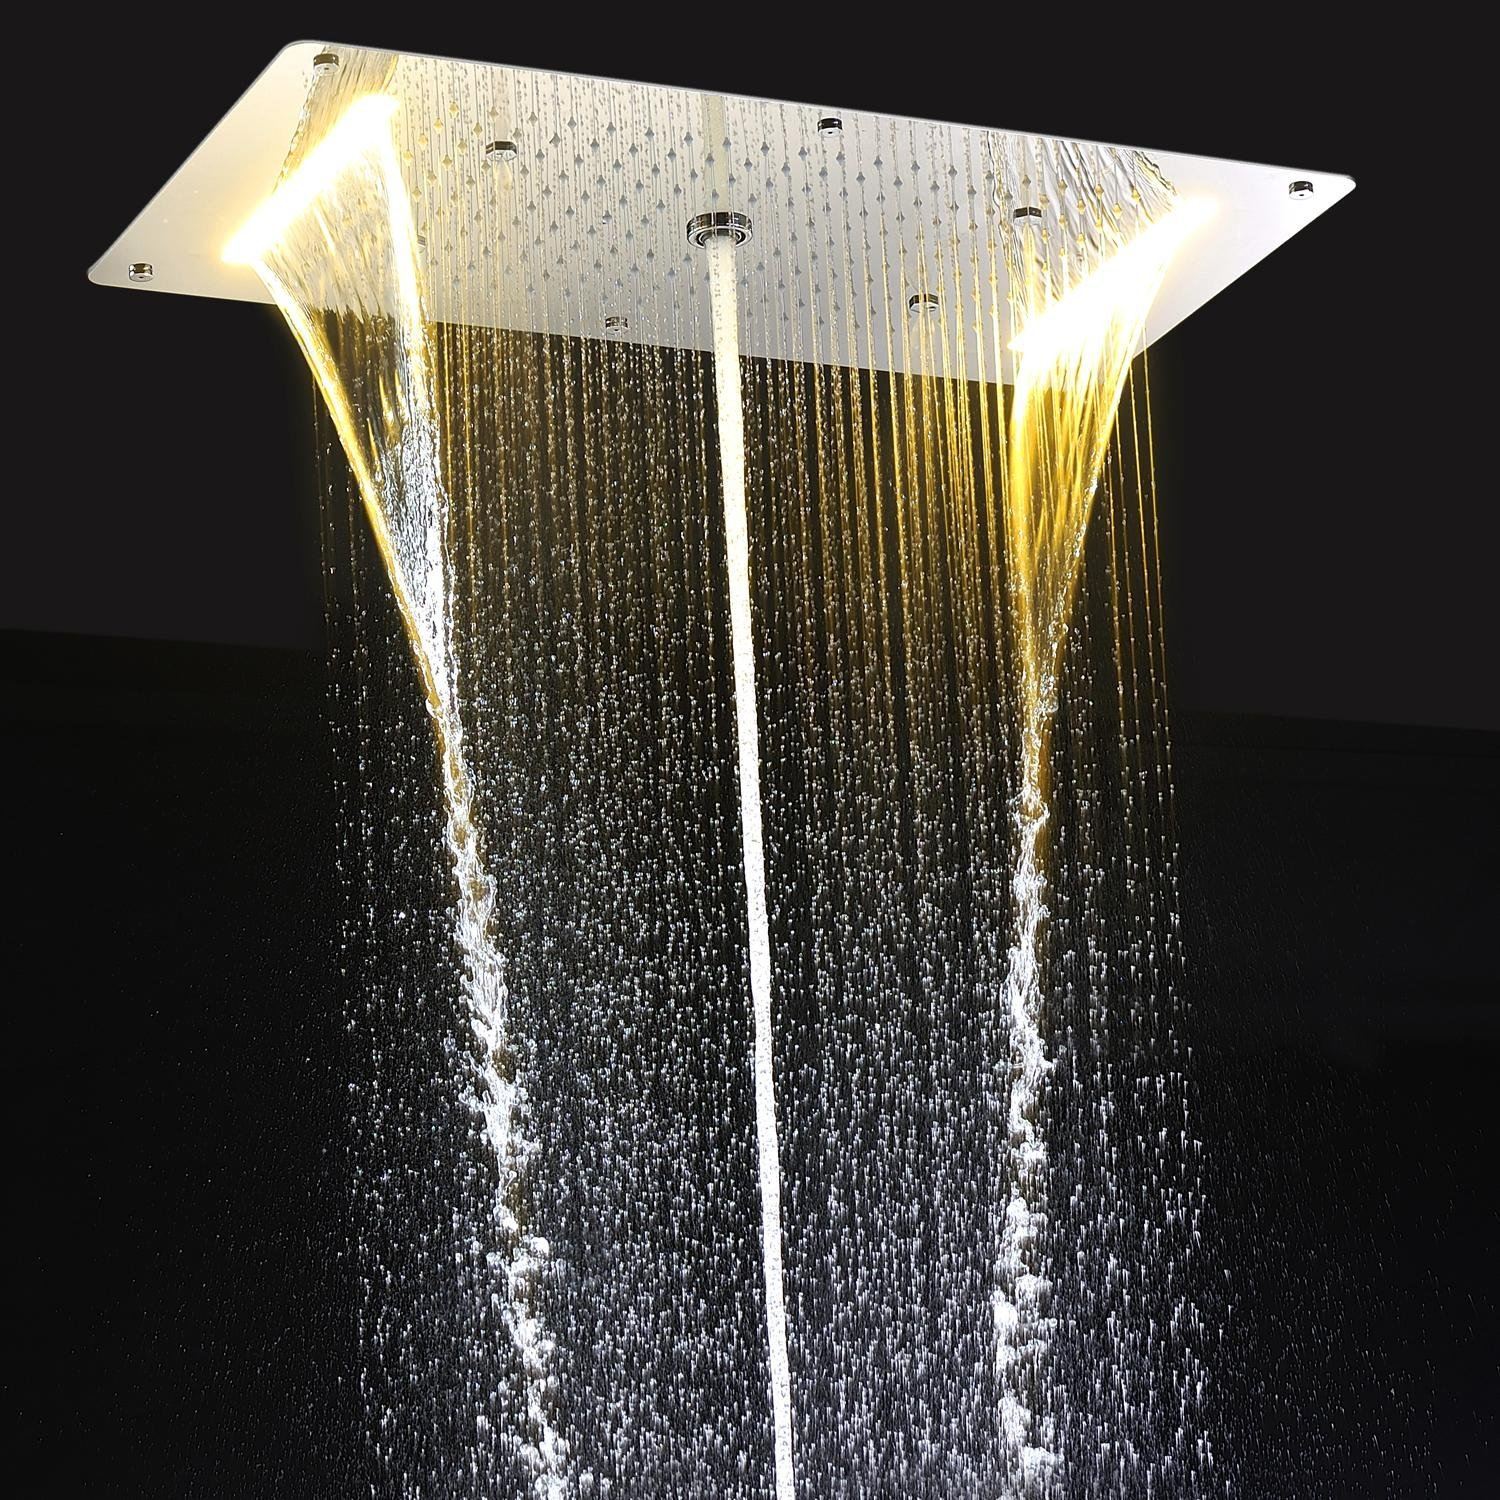 Buy Onlt 9 Function Led Shower Head Light Rain Shower